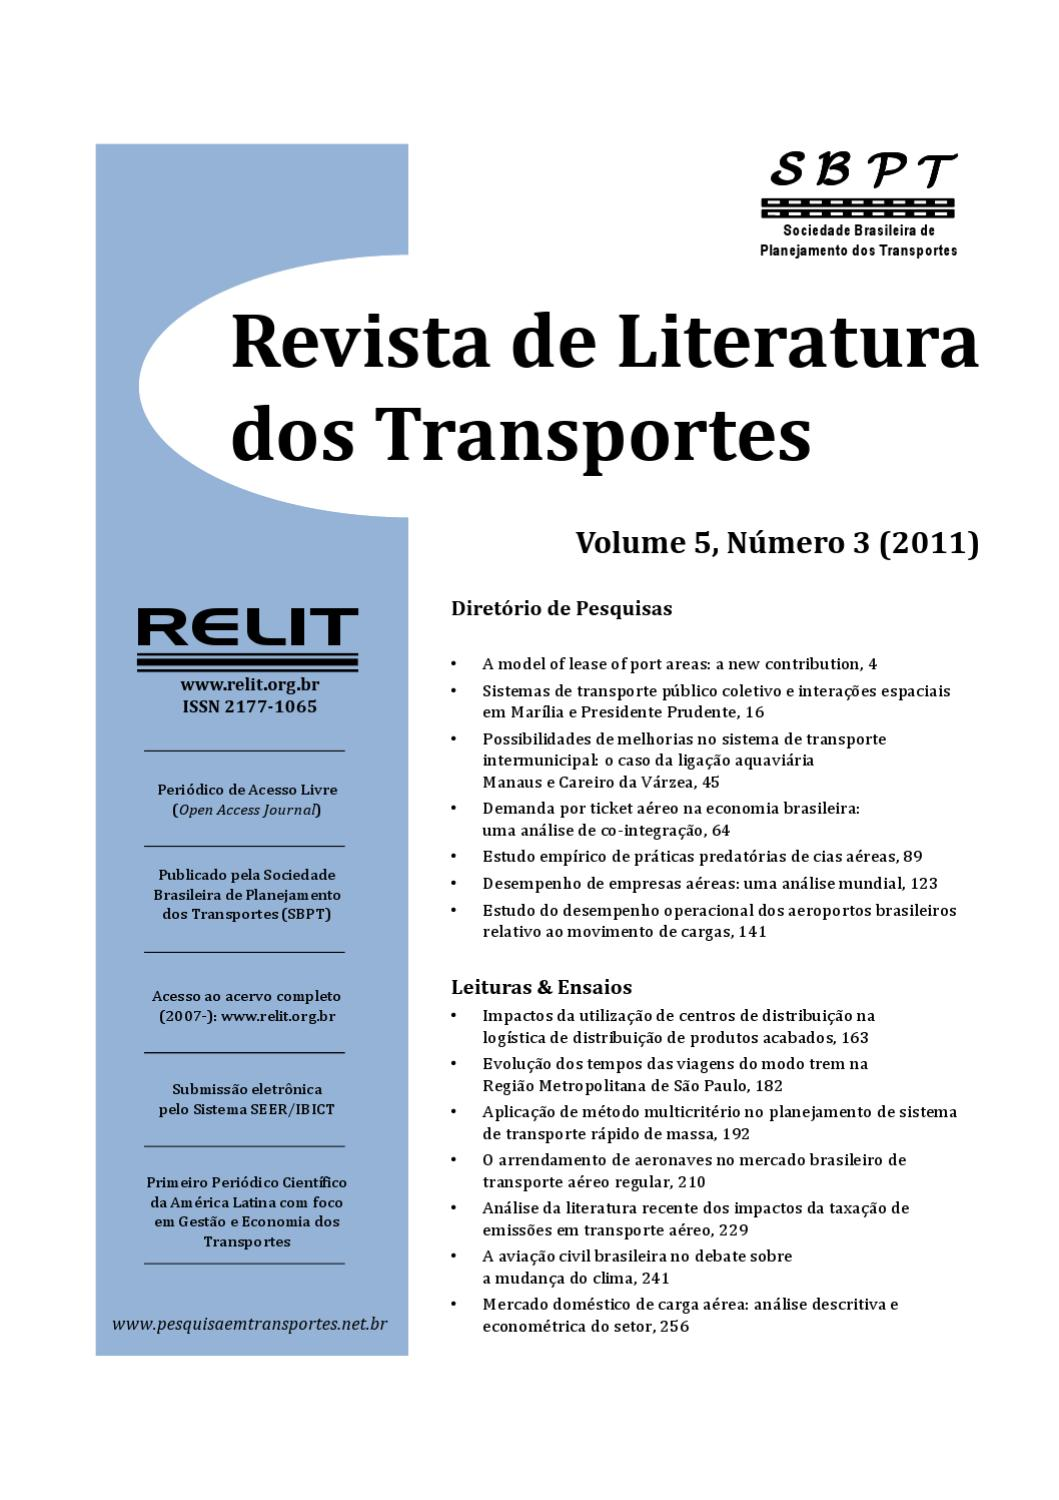 Relit vol 5 n 3 2011 by alessandro oliveira issuu fandeluxe Gallery